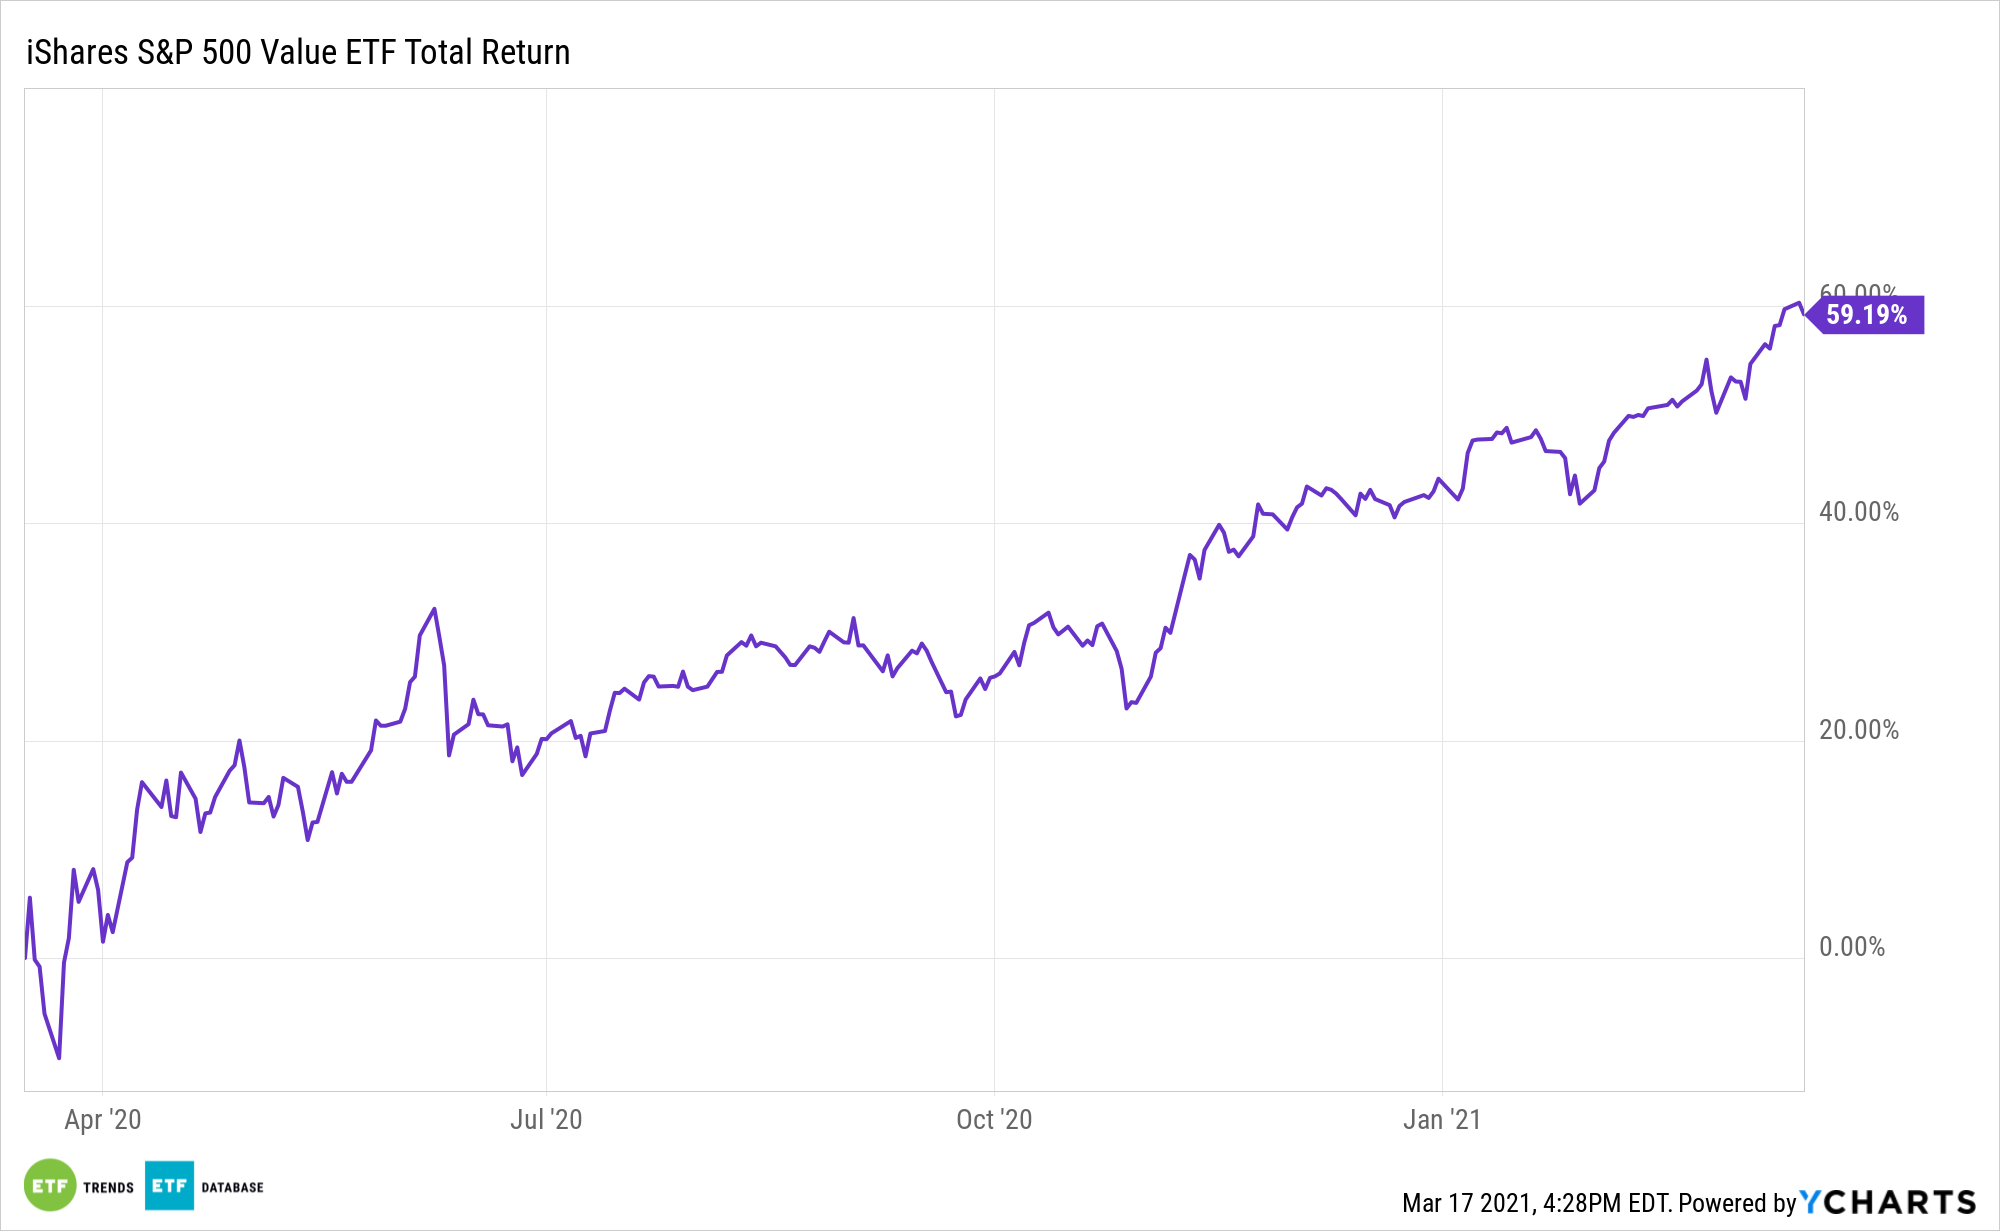 IVE 1 Year Performance